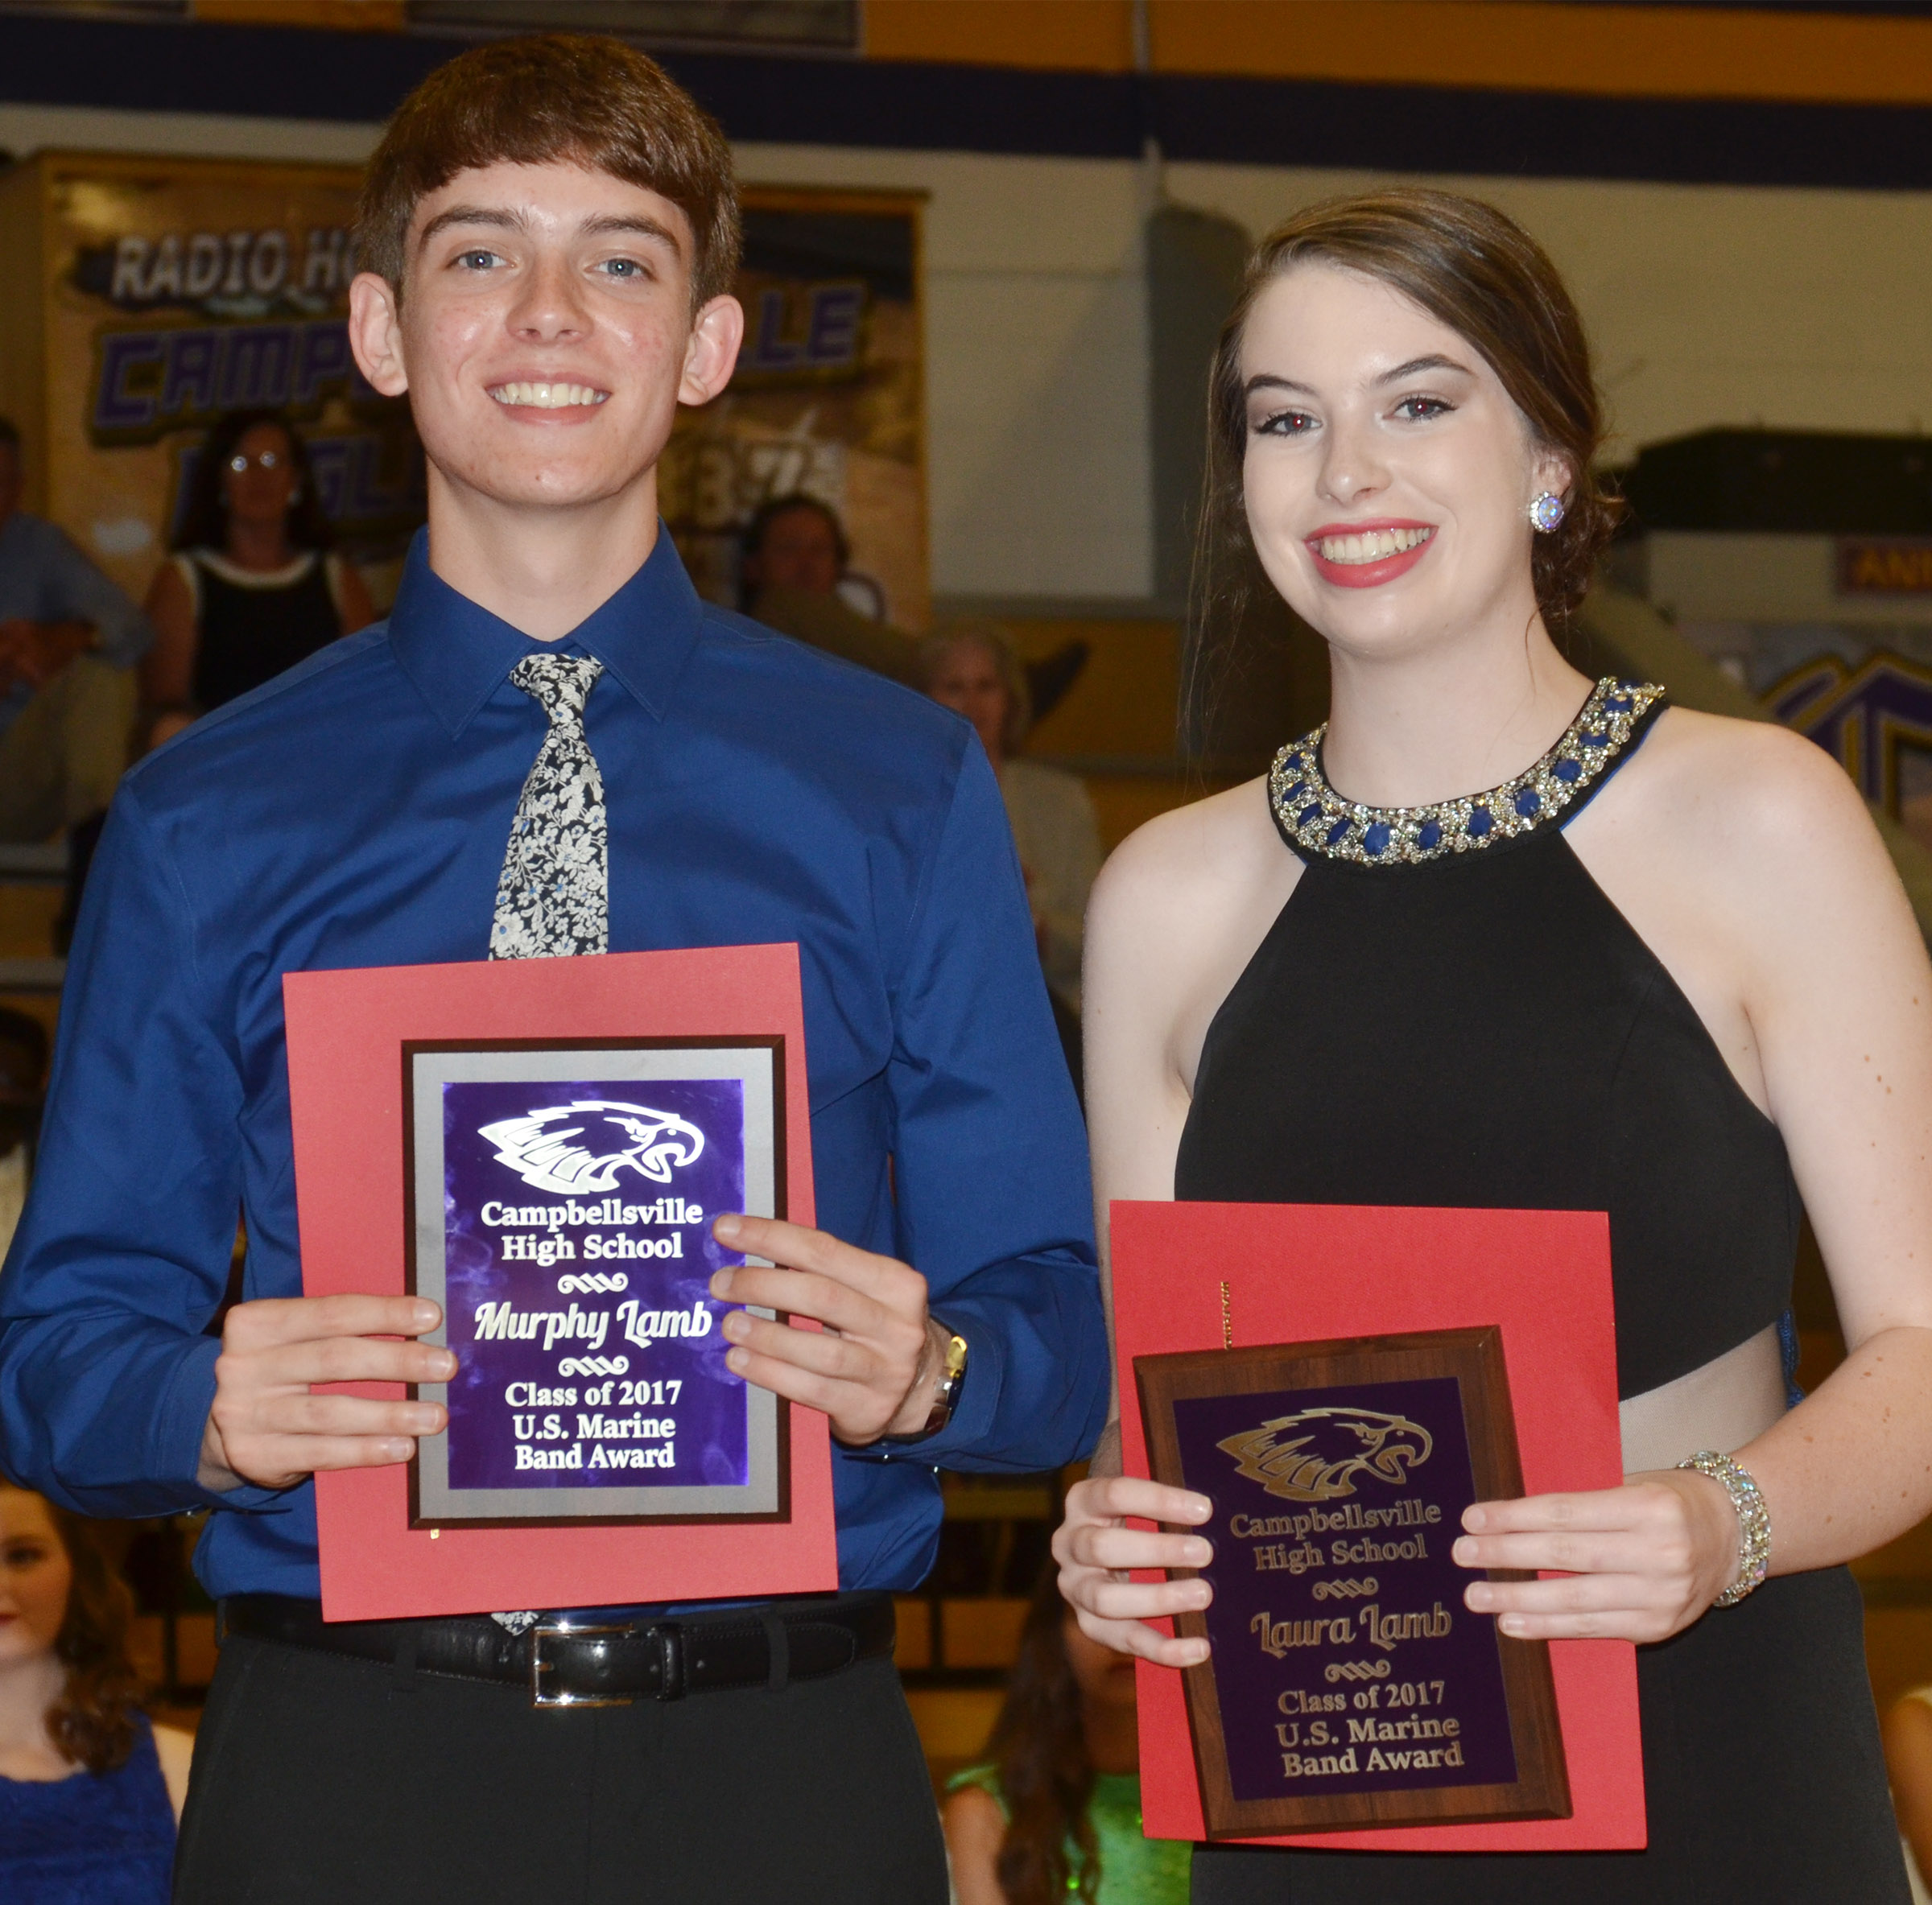 Murphy Lamb and Laura Lamb receive the U.S. Marine Band awards.